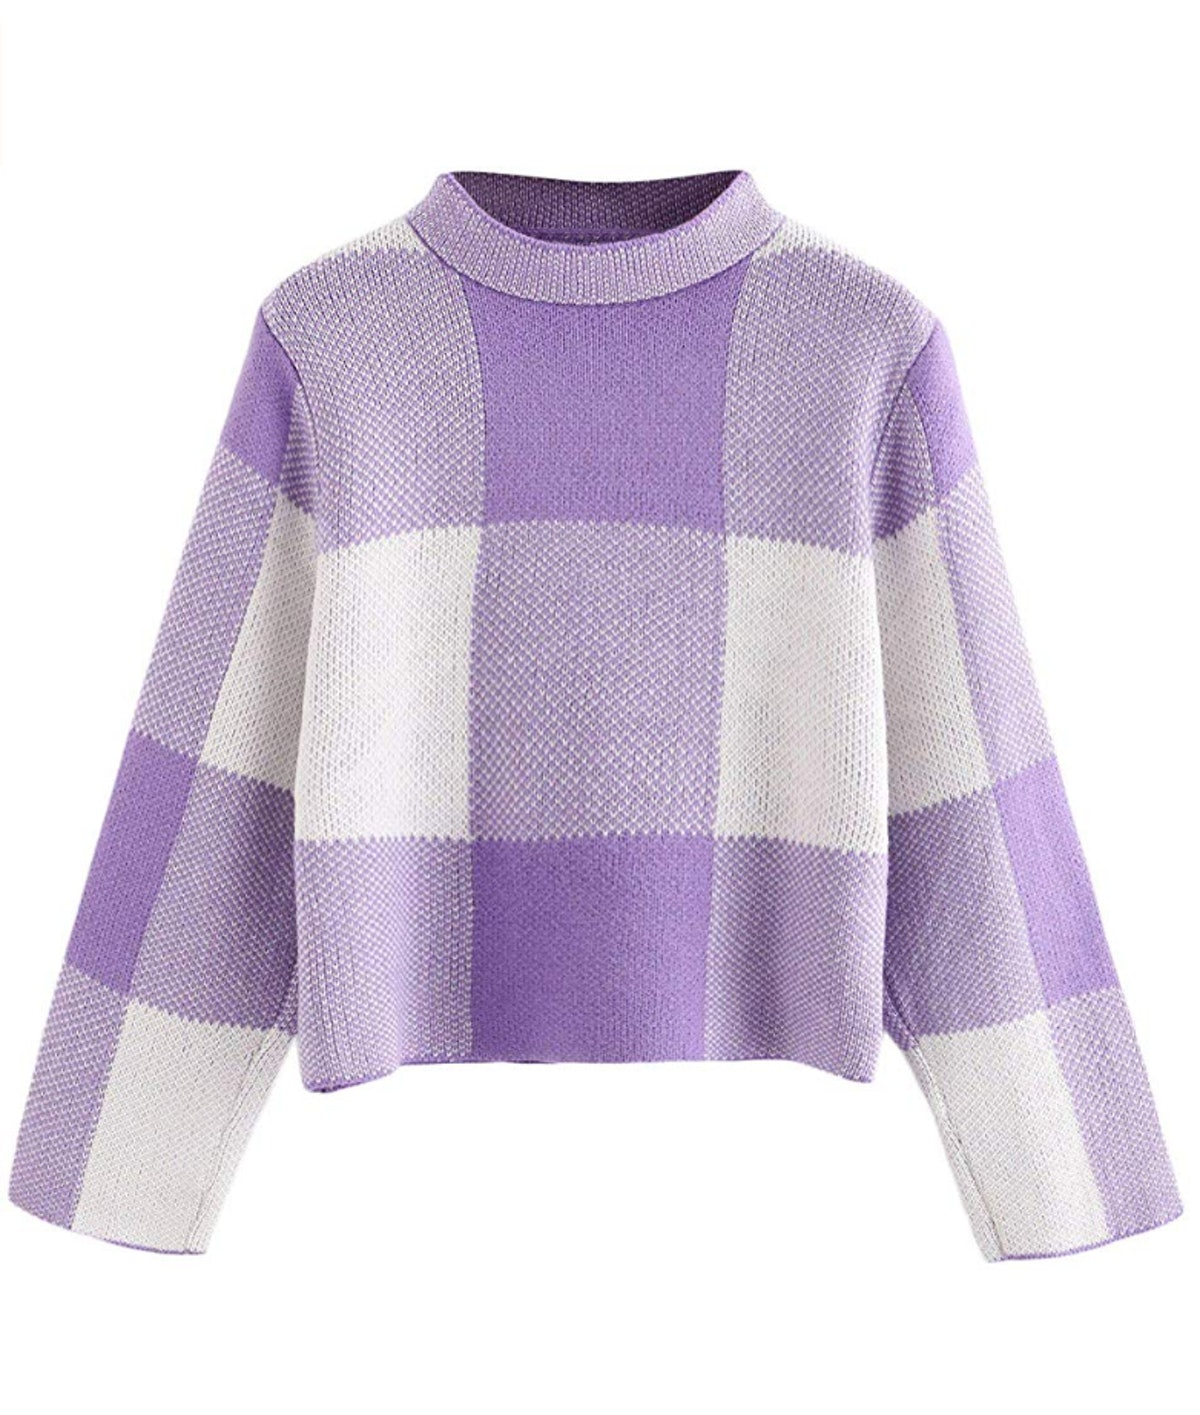 Floerns Cropped High Neck Plaid Sweater